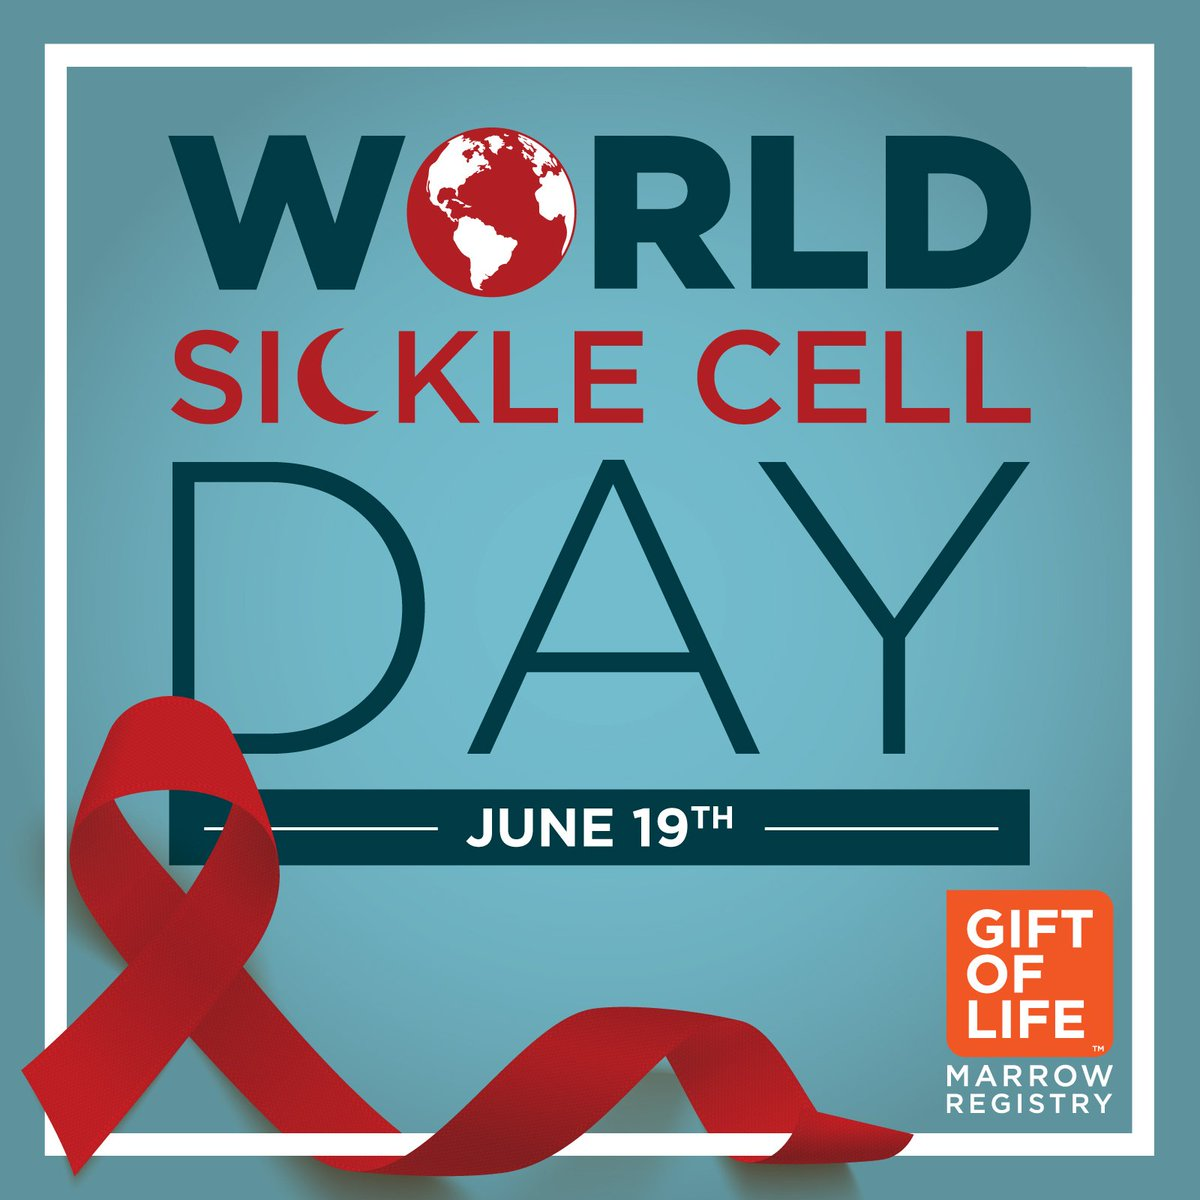 ... a simple cheek swab and help those battling #sicklecell get a second chance at life! http://giftoflife.org/register #youcurepic.twitter.com/0QmCwuSiYz